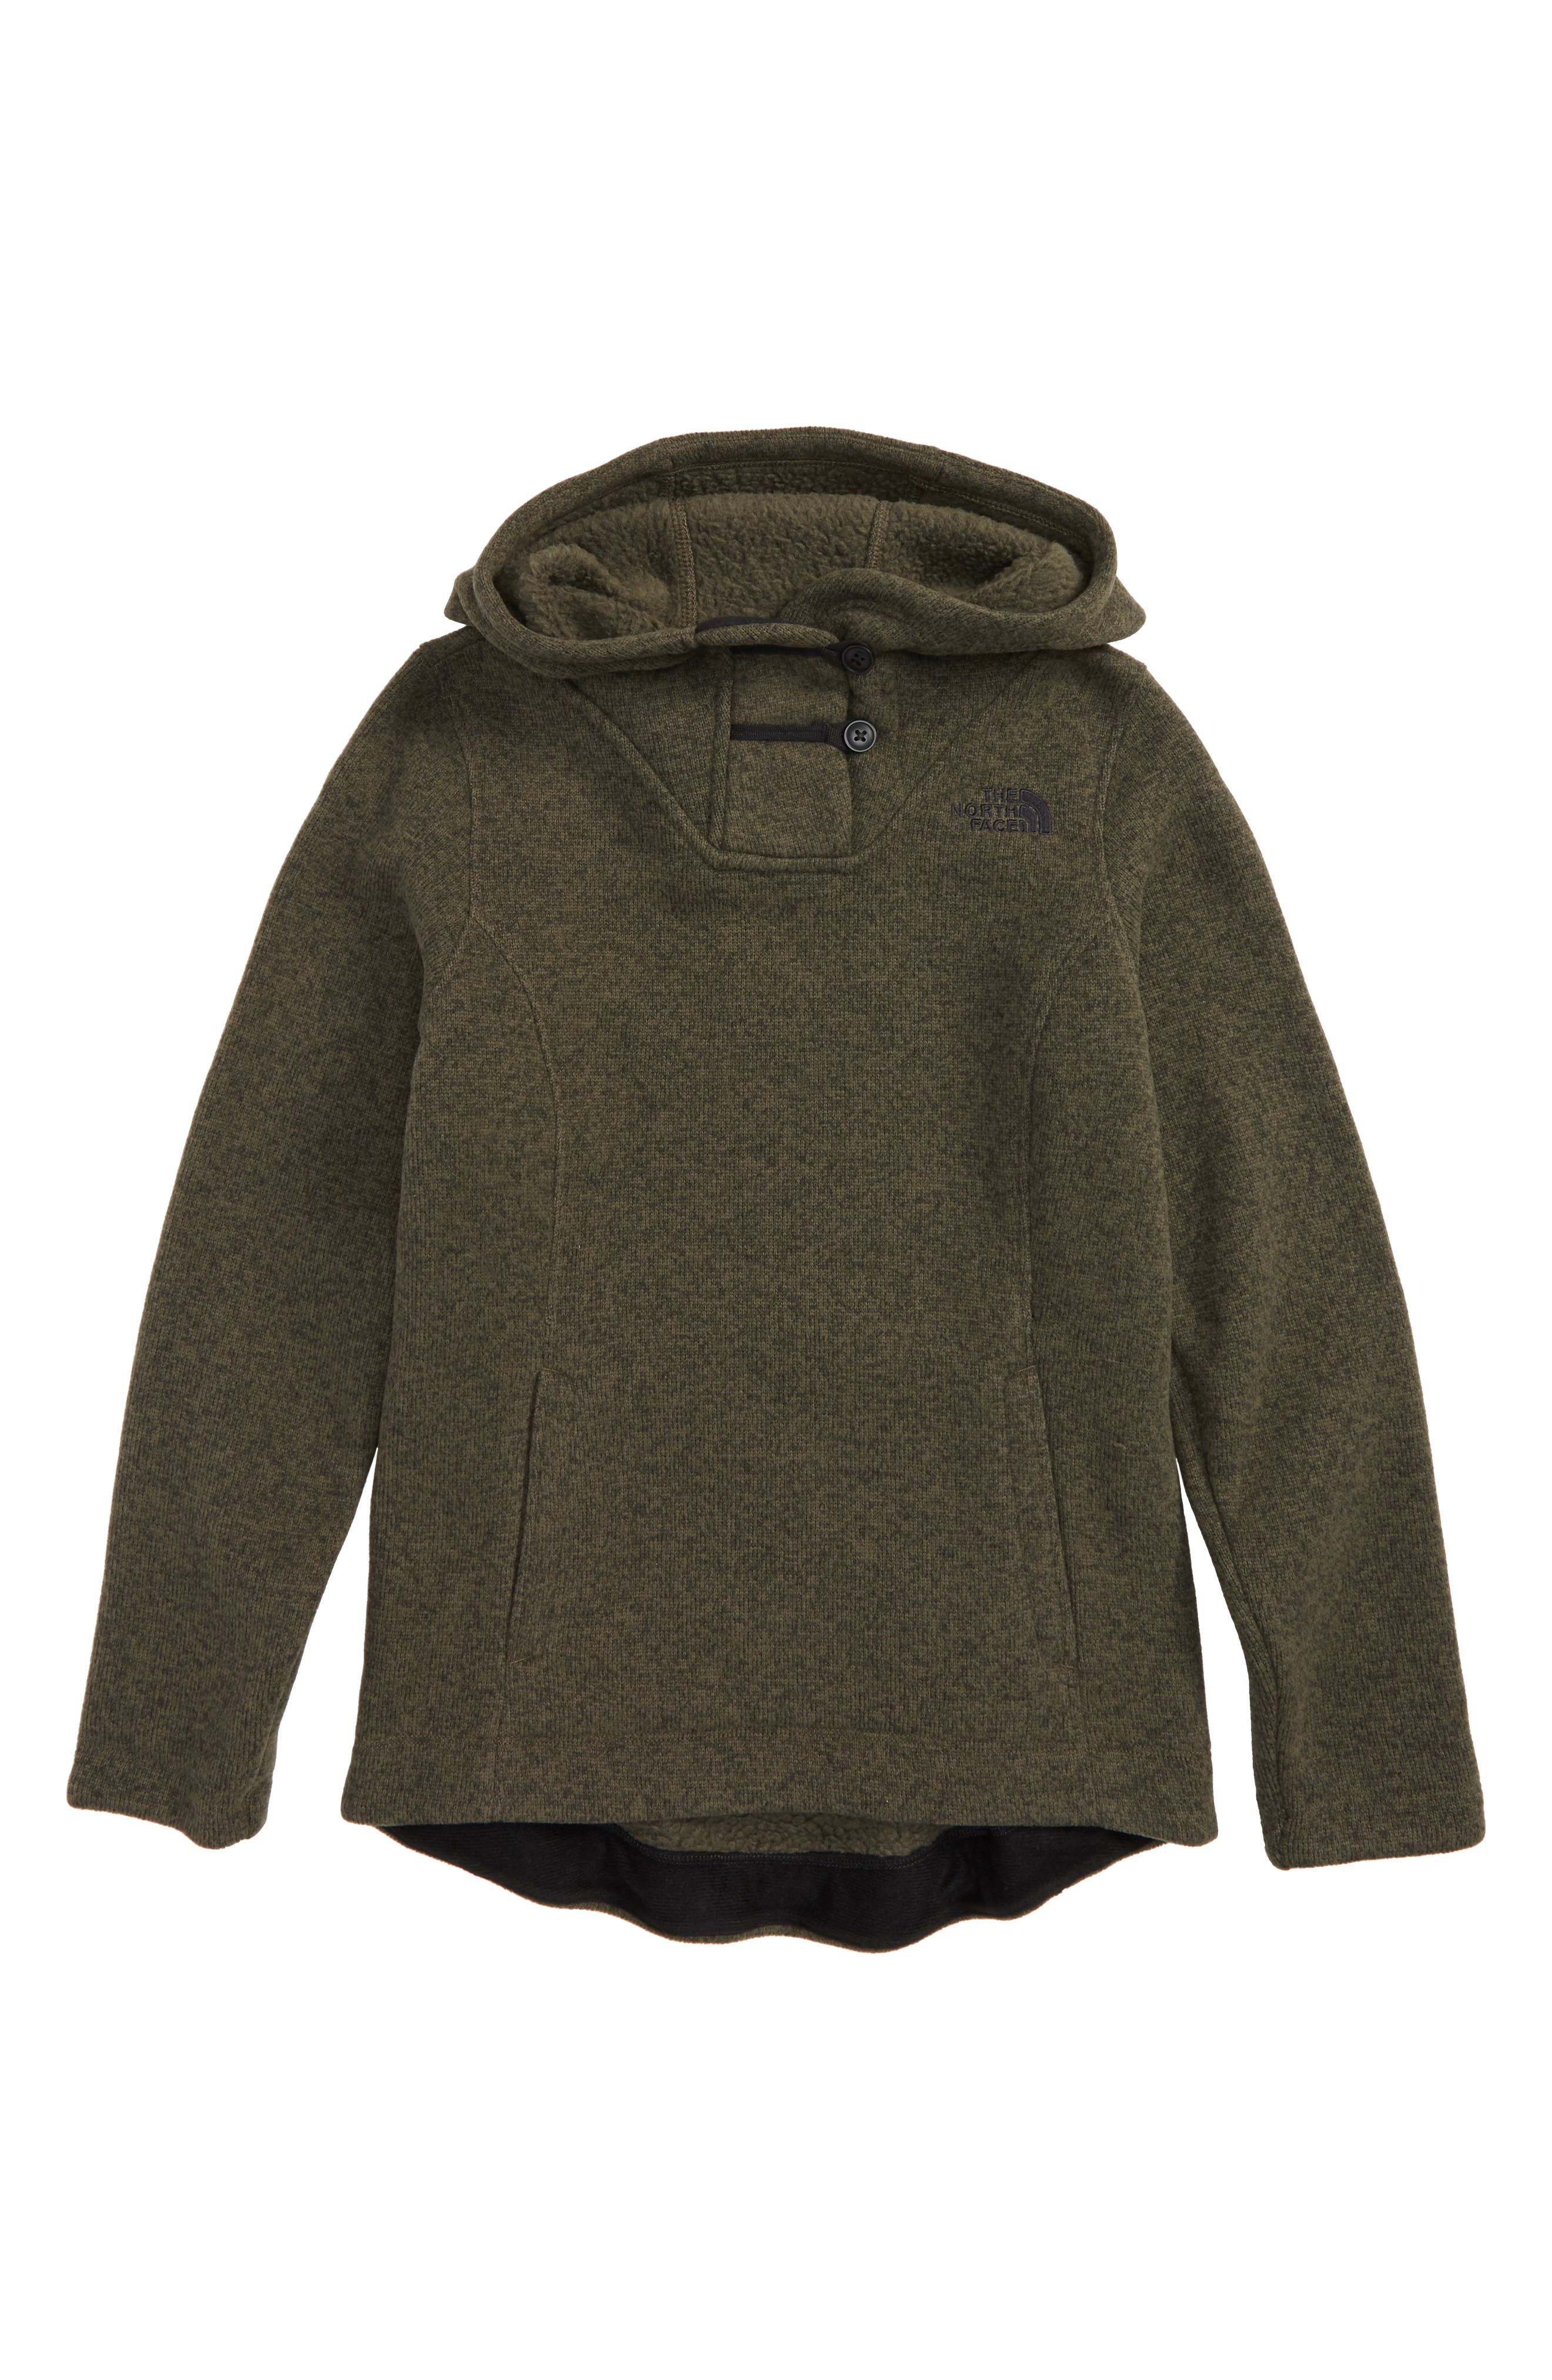 Main Image - The North Face Crescent Sunset Hoodie (Big Girls)